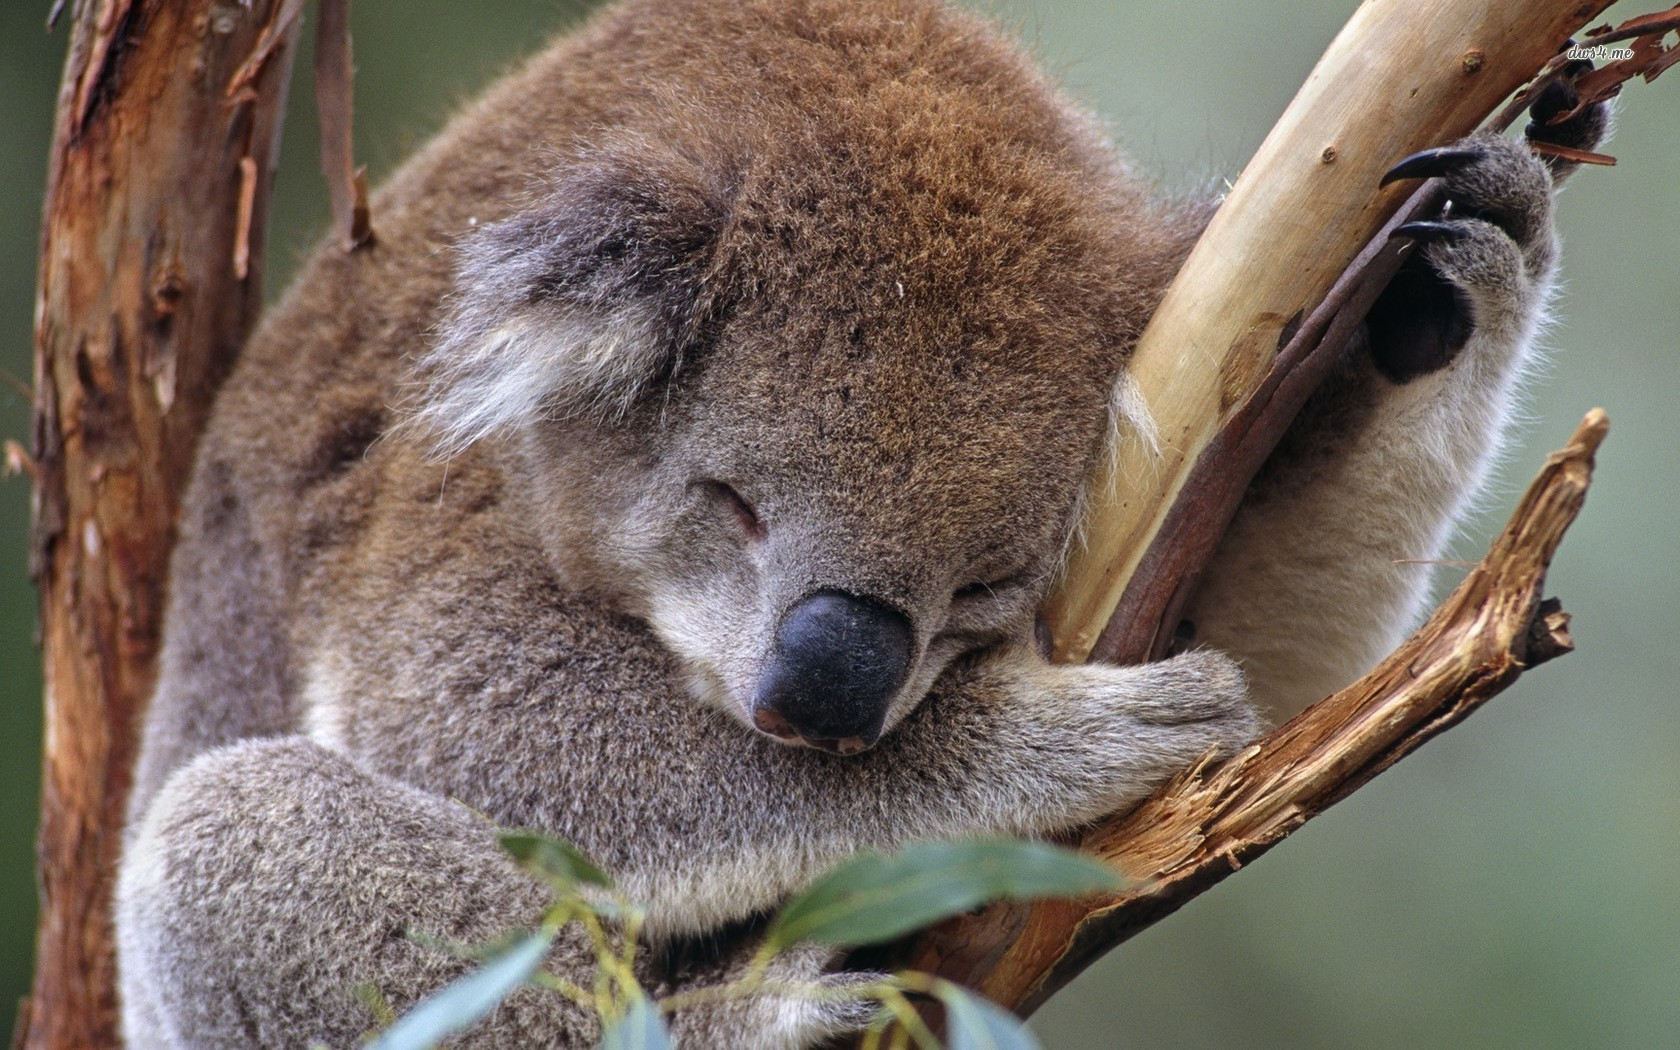 Cute Baby Animal Pictures Wallpapers Koala Wallpaper 1680x1050 46355